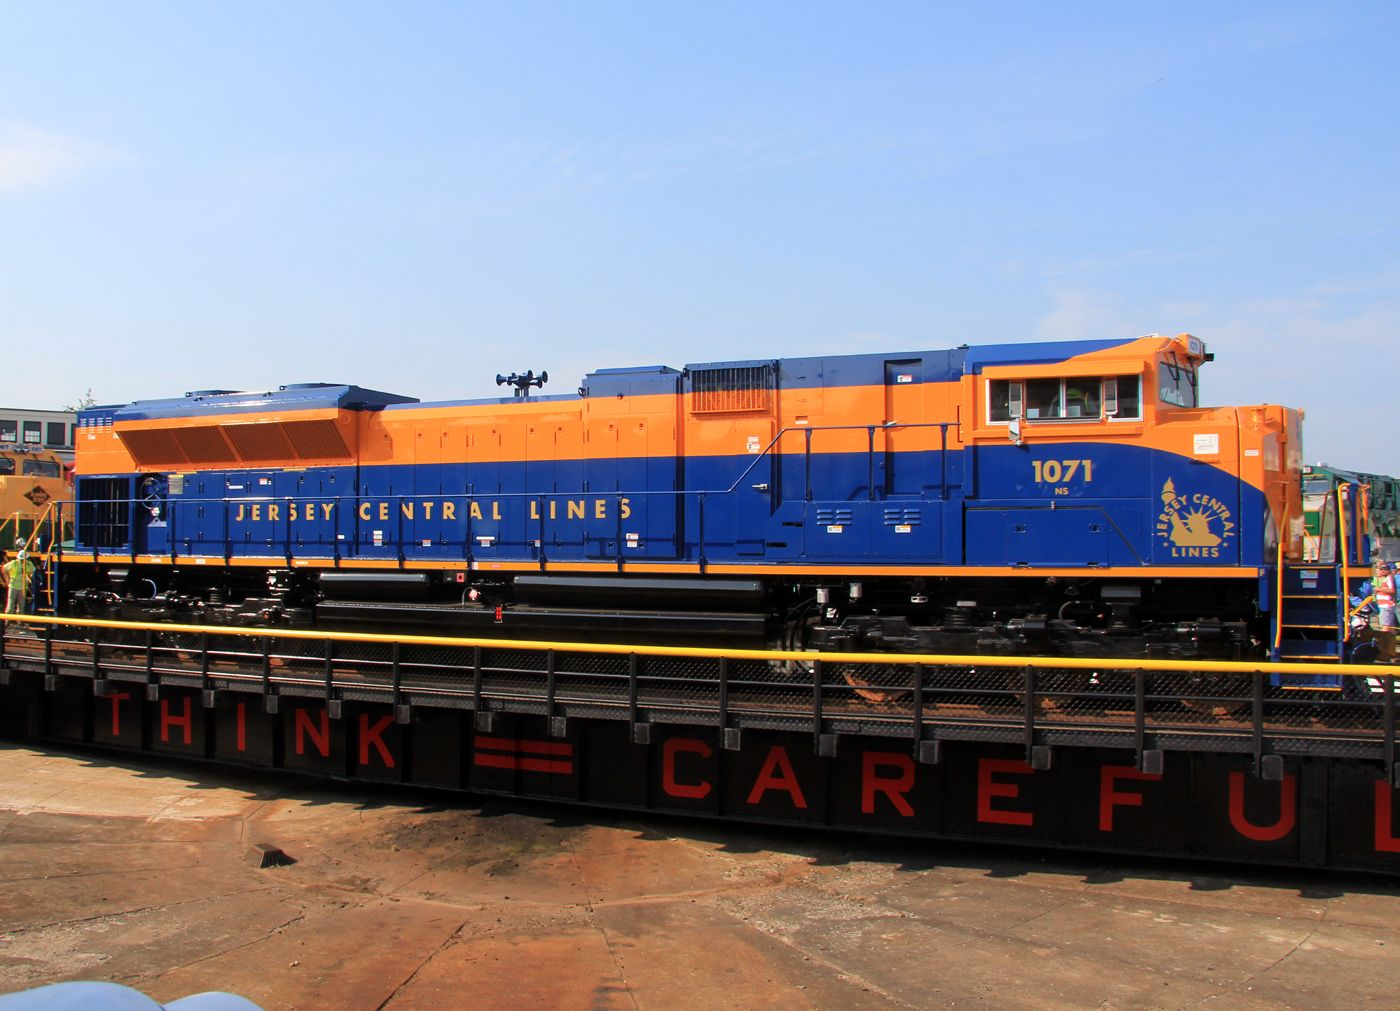 jersey central lines images 1071   Aeromoe's Norfolk Southern Heritage Units Adventure